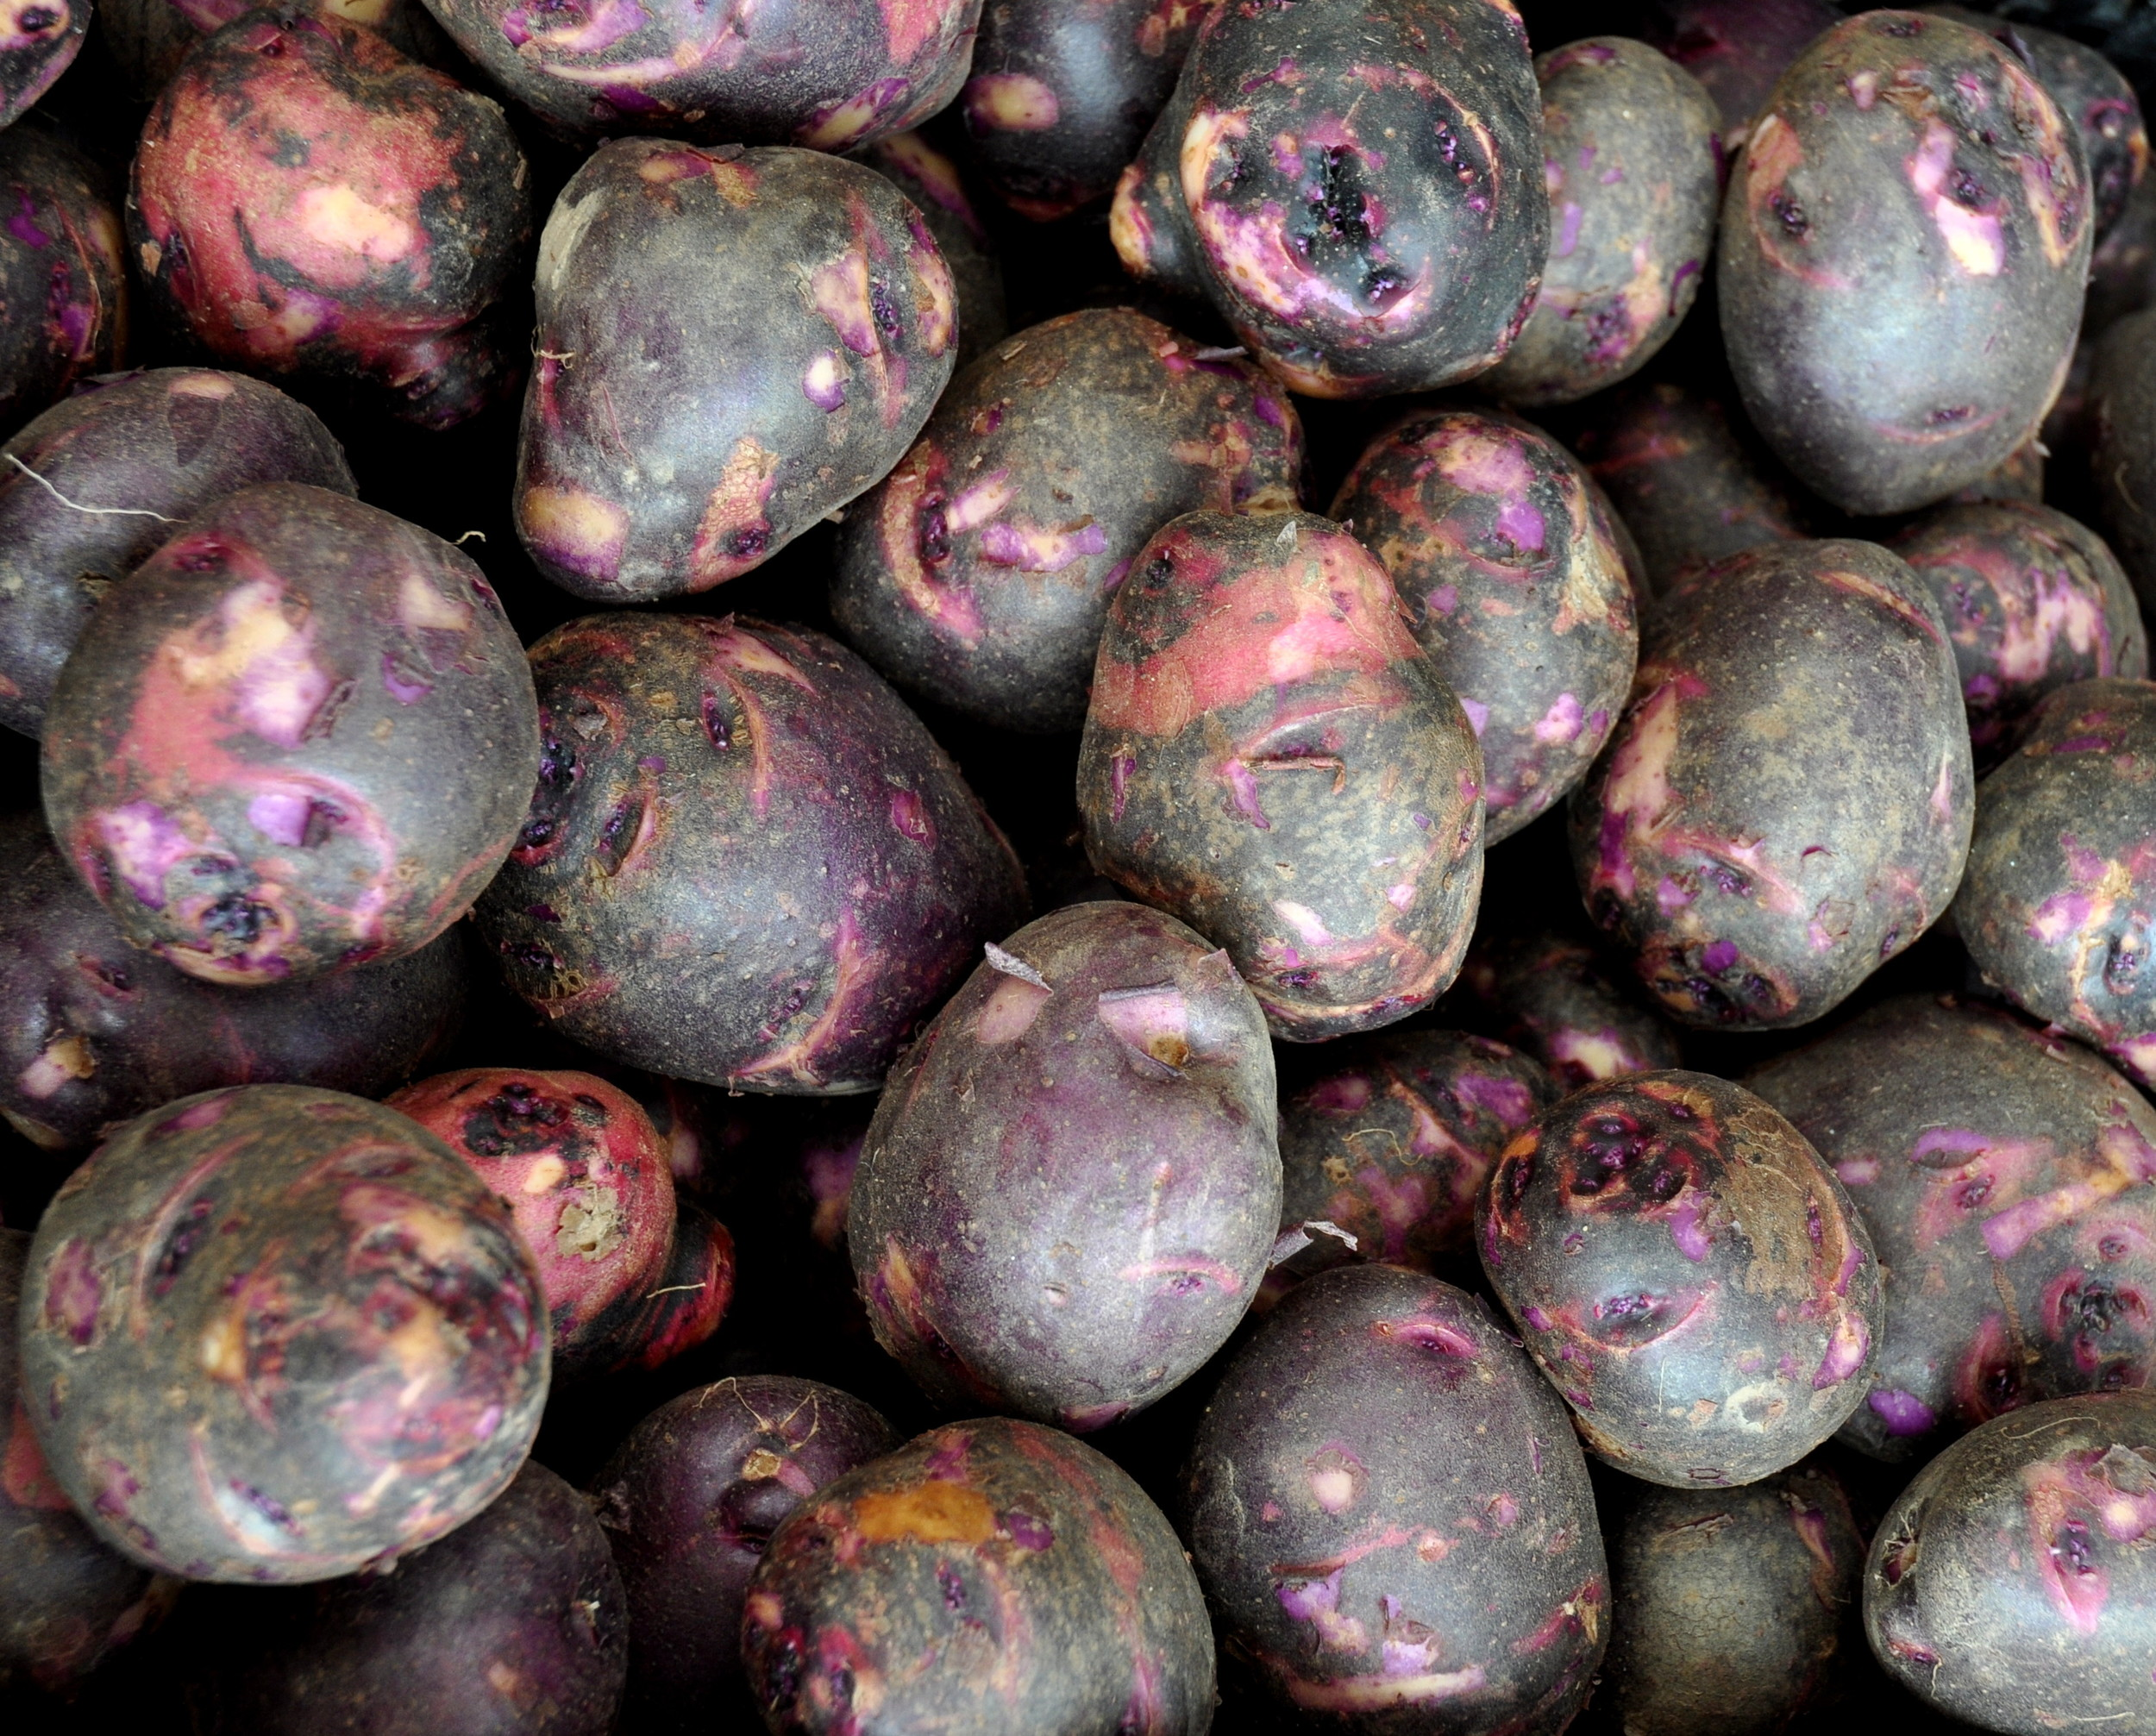 Viking purple potatoes from Olsen Farms. Photo copyright 2013 by Zachary D. Lyons.